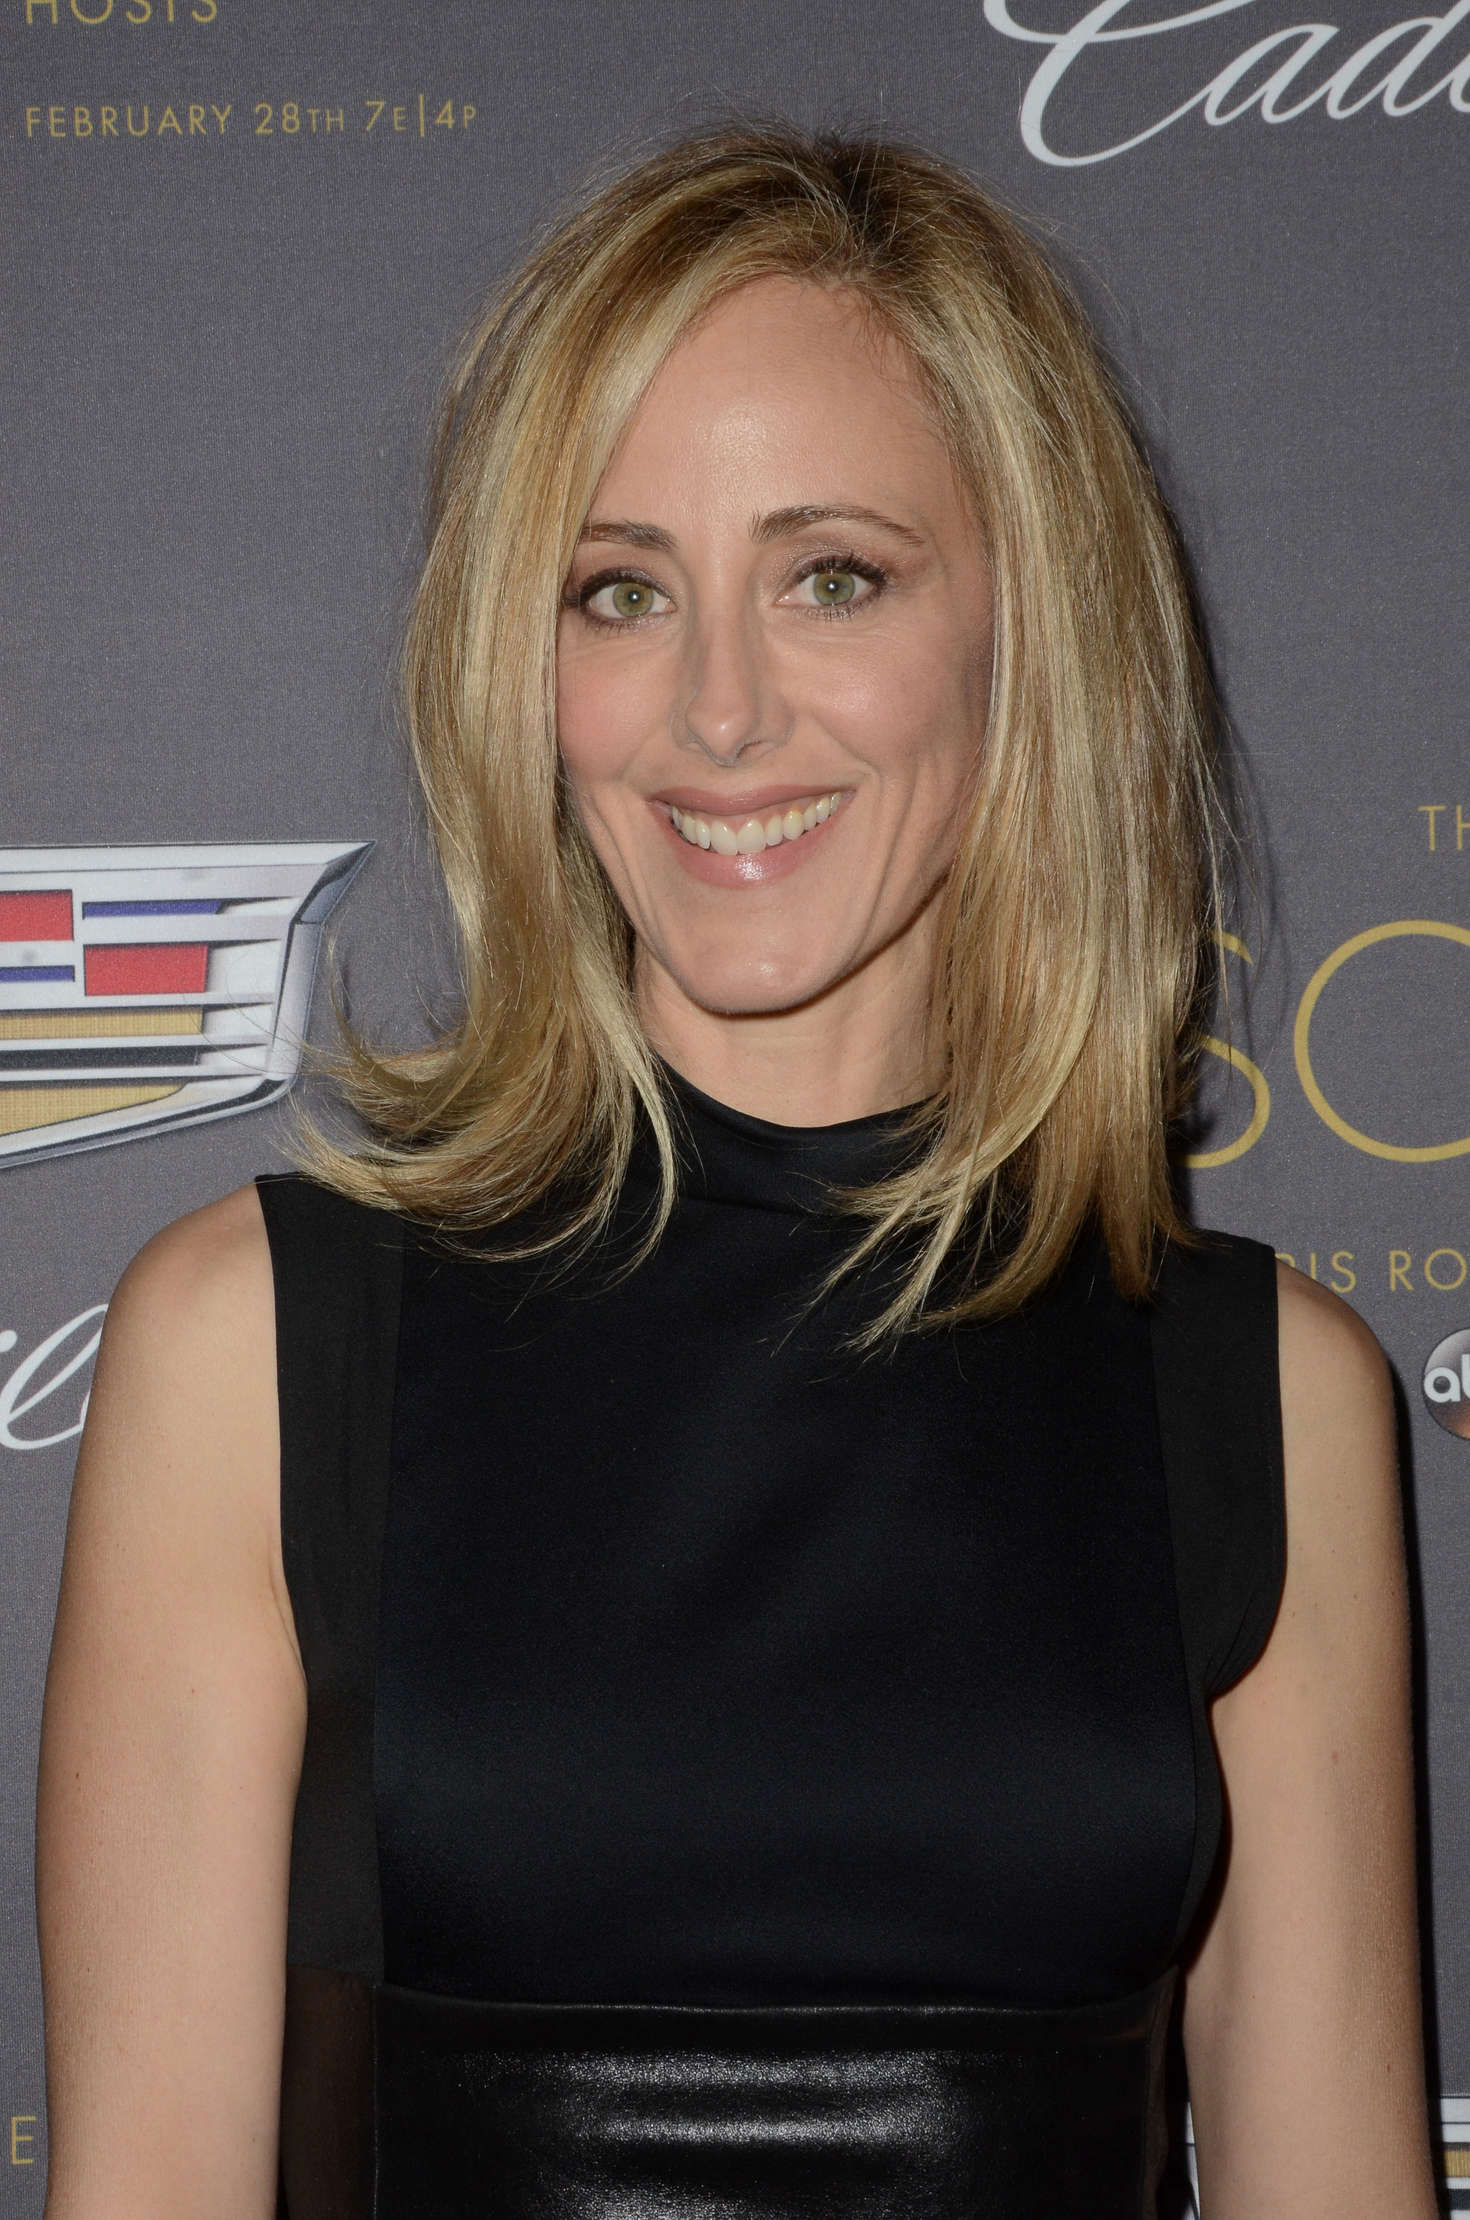 Kim Raver Cadillac Pre-Oscar Celebration in West Hollywood